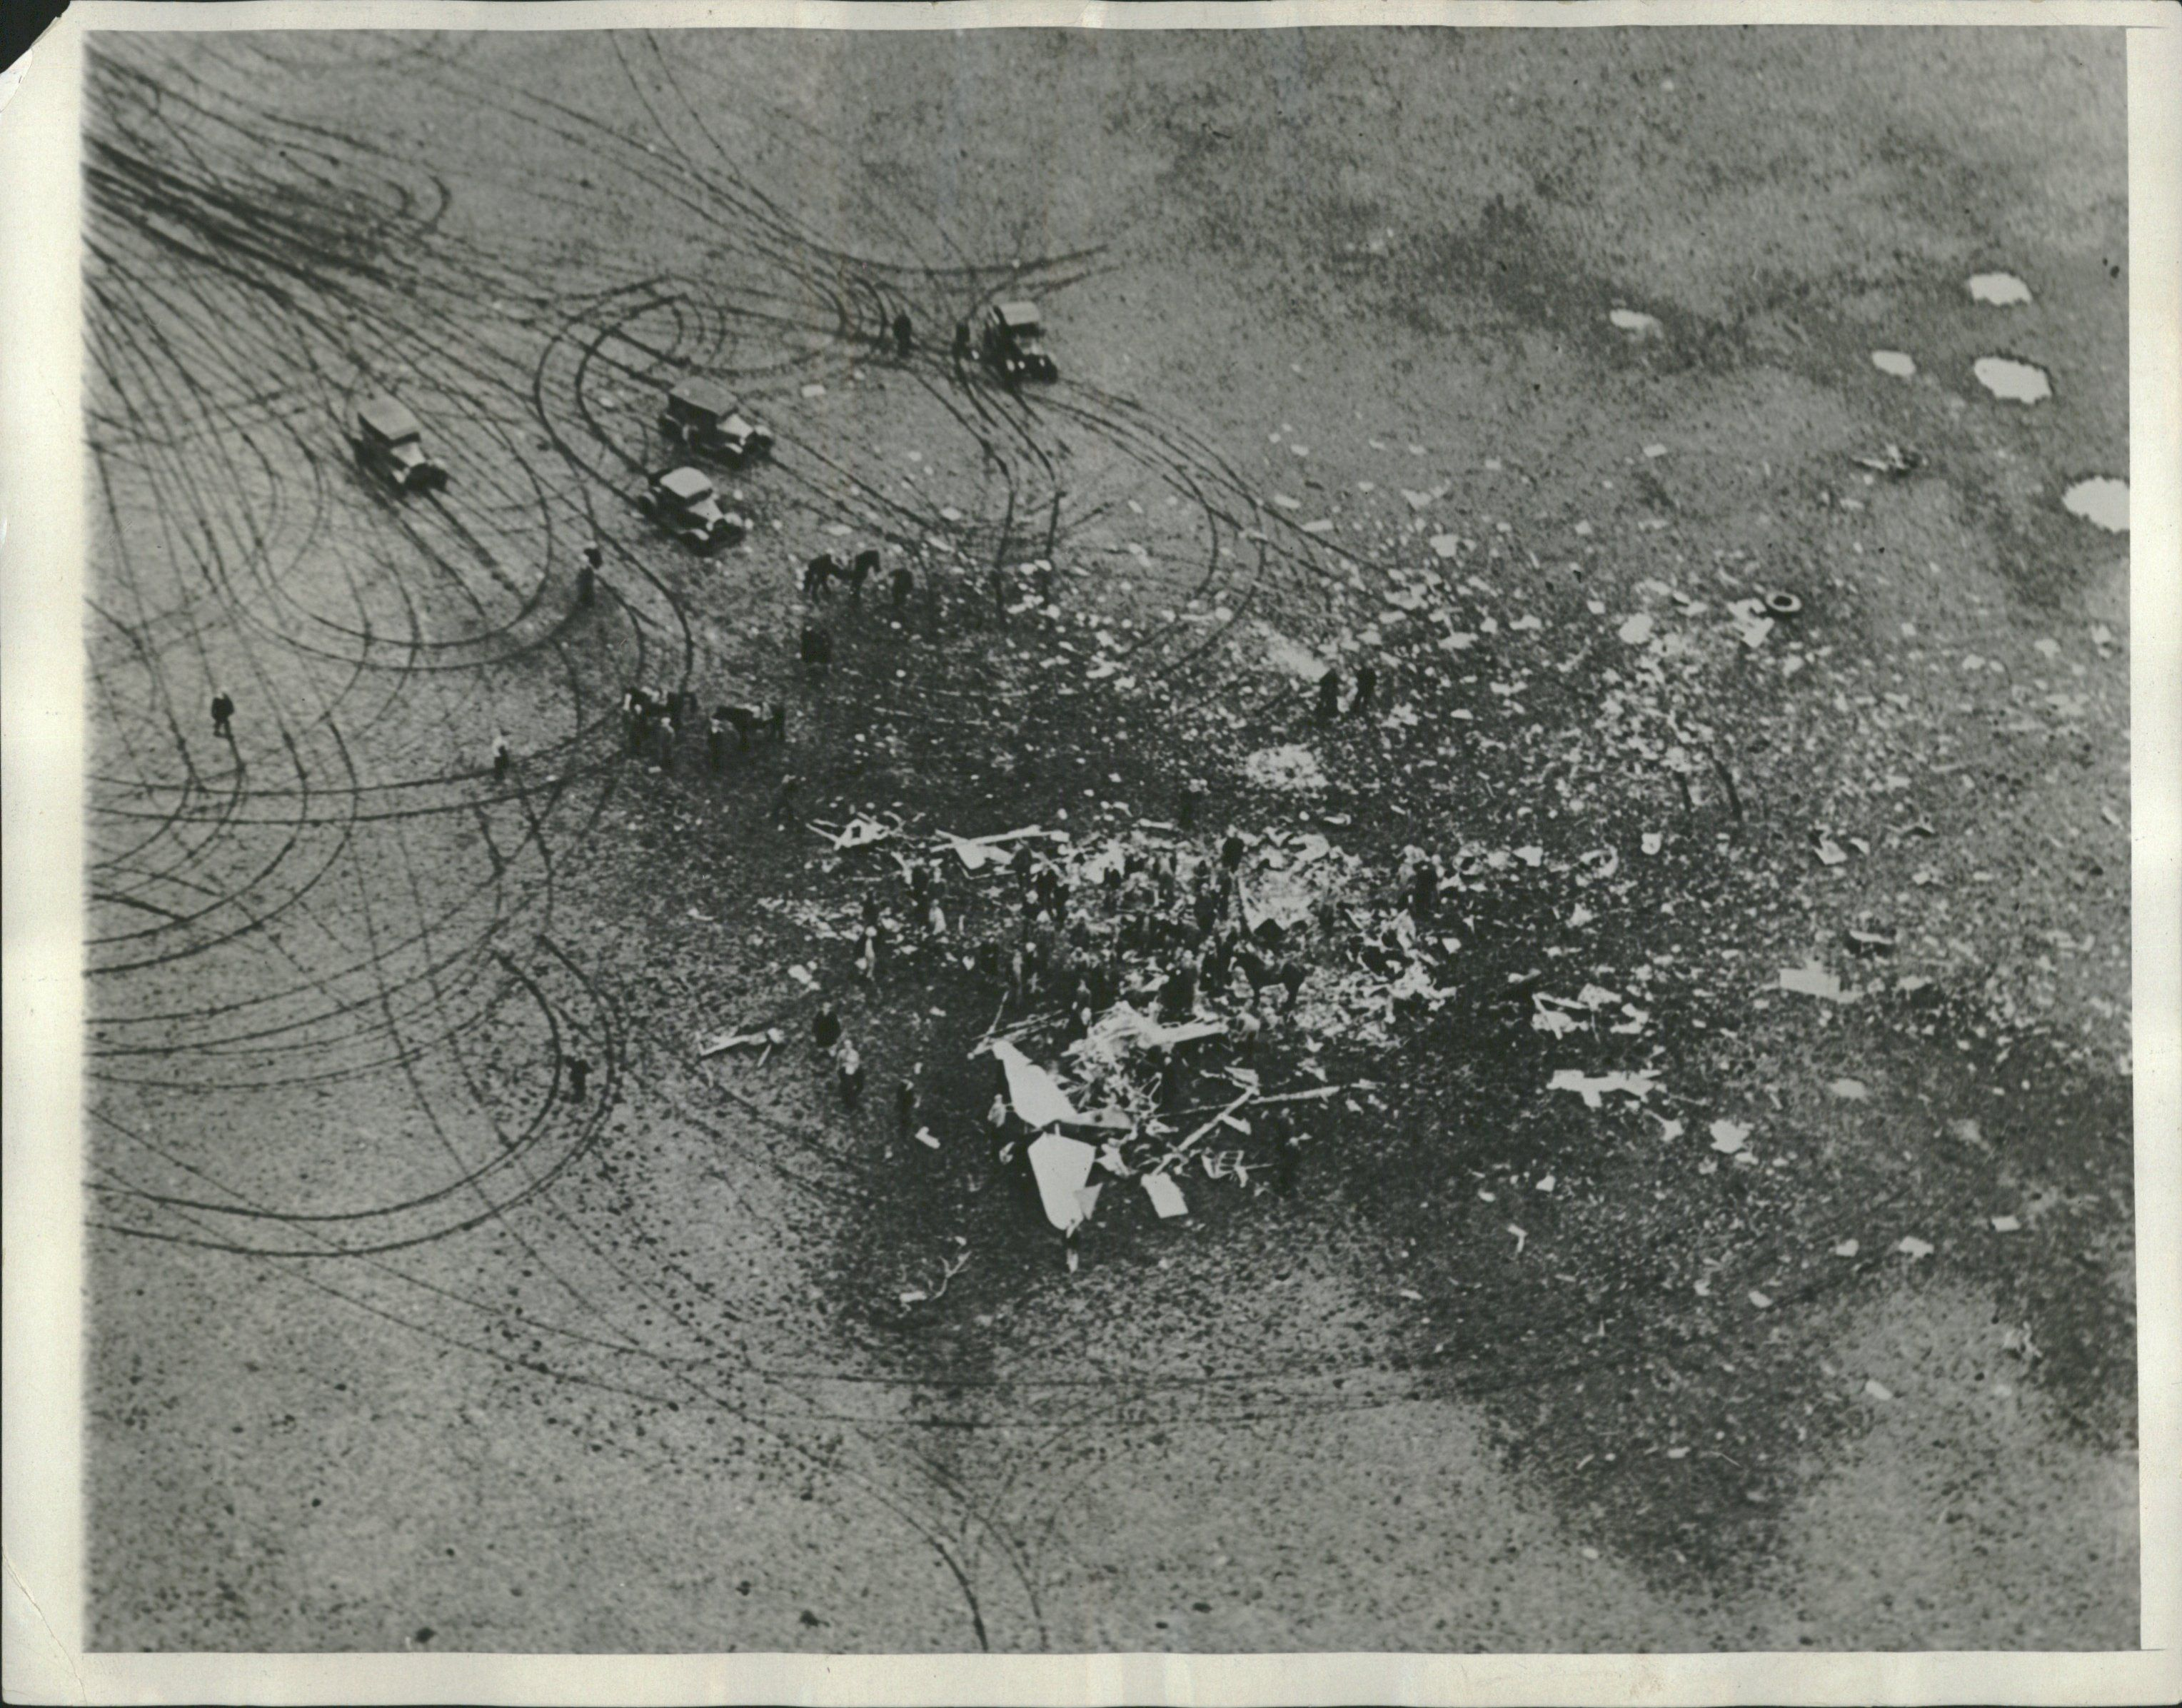 Rockne crash site